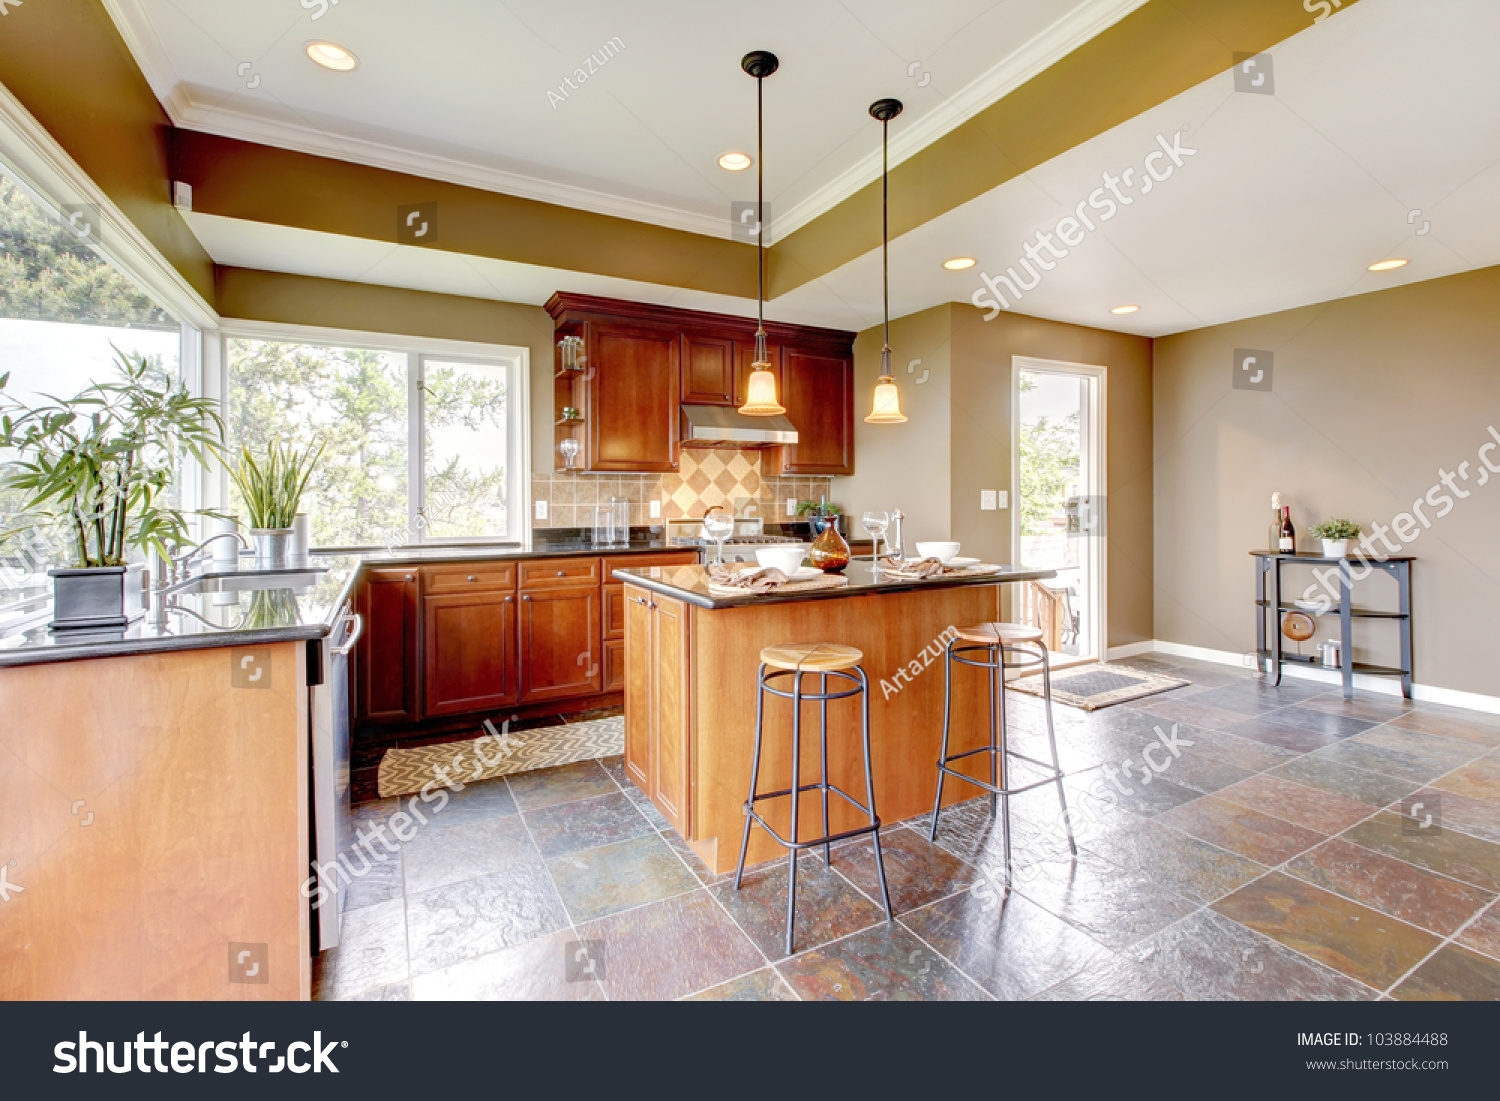 Stone Floor Kitchen Luxury Kitchen Interior With Green Walls And Stone Floor And